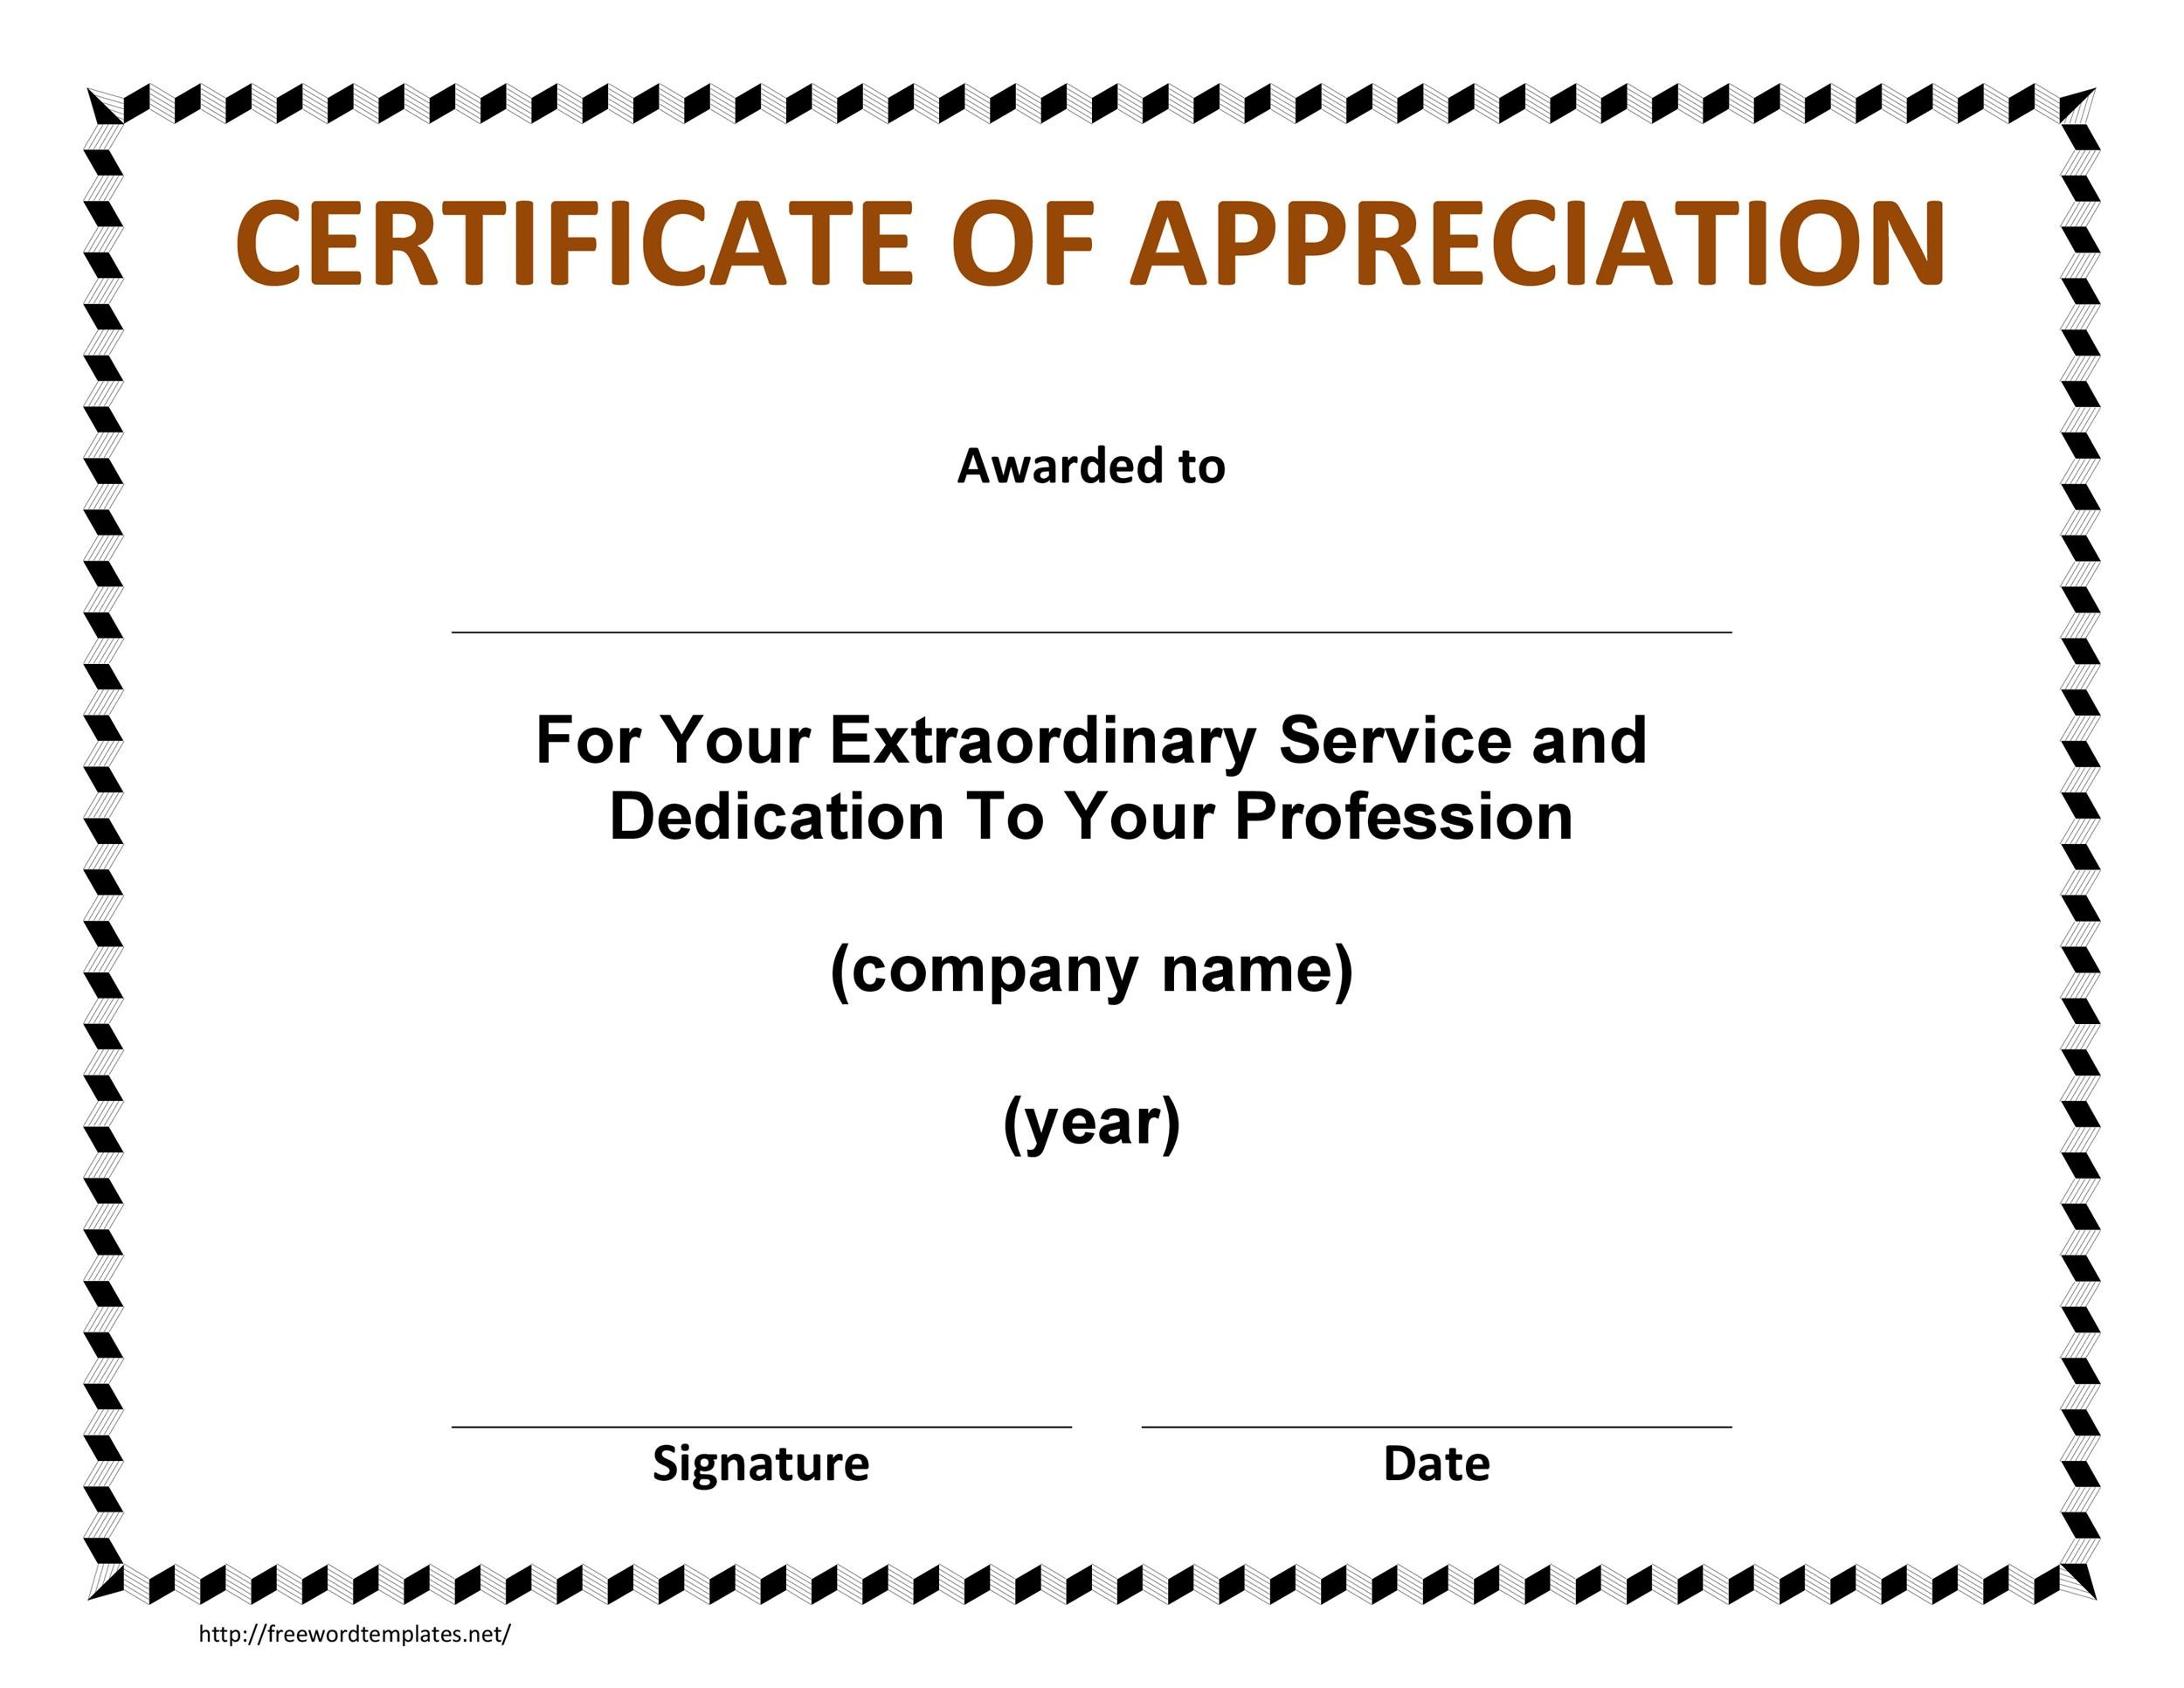 30 free certificate of appreciation templates and letters printable certificate of appreciation 04 yadclub